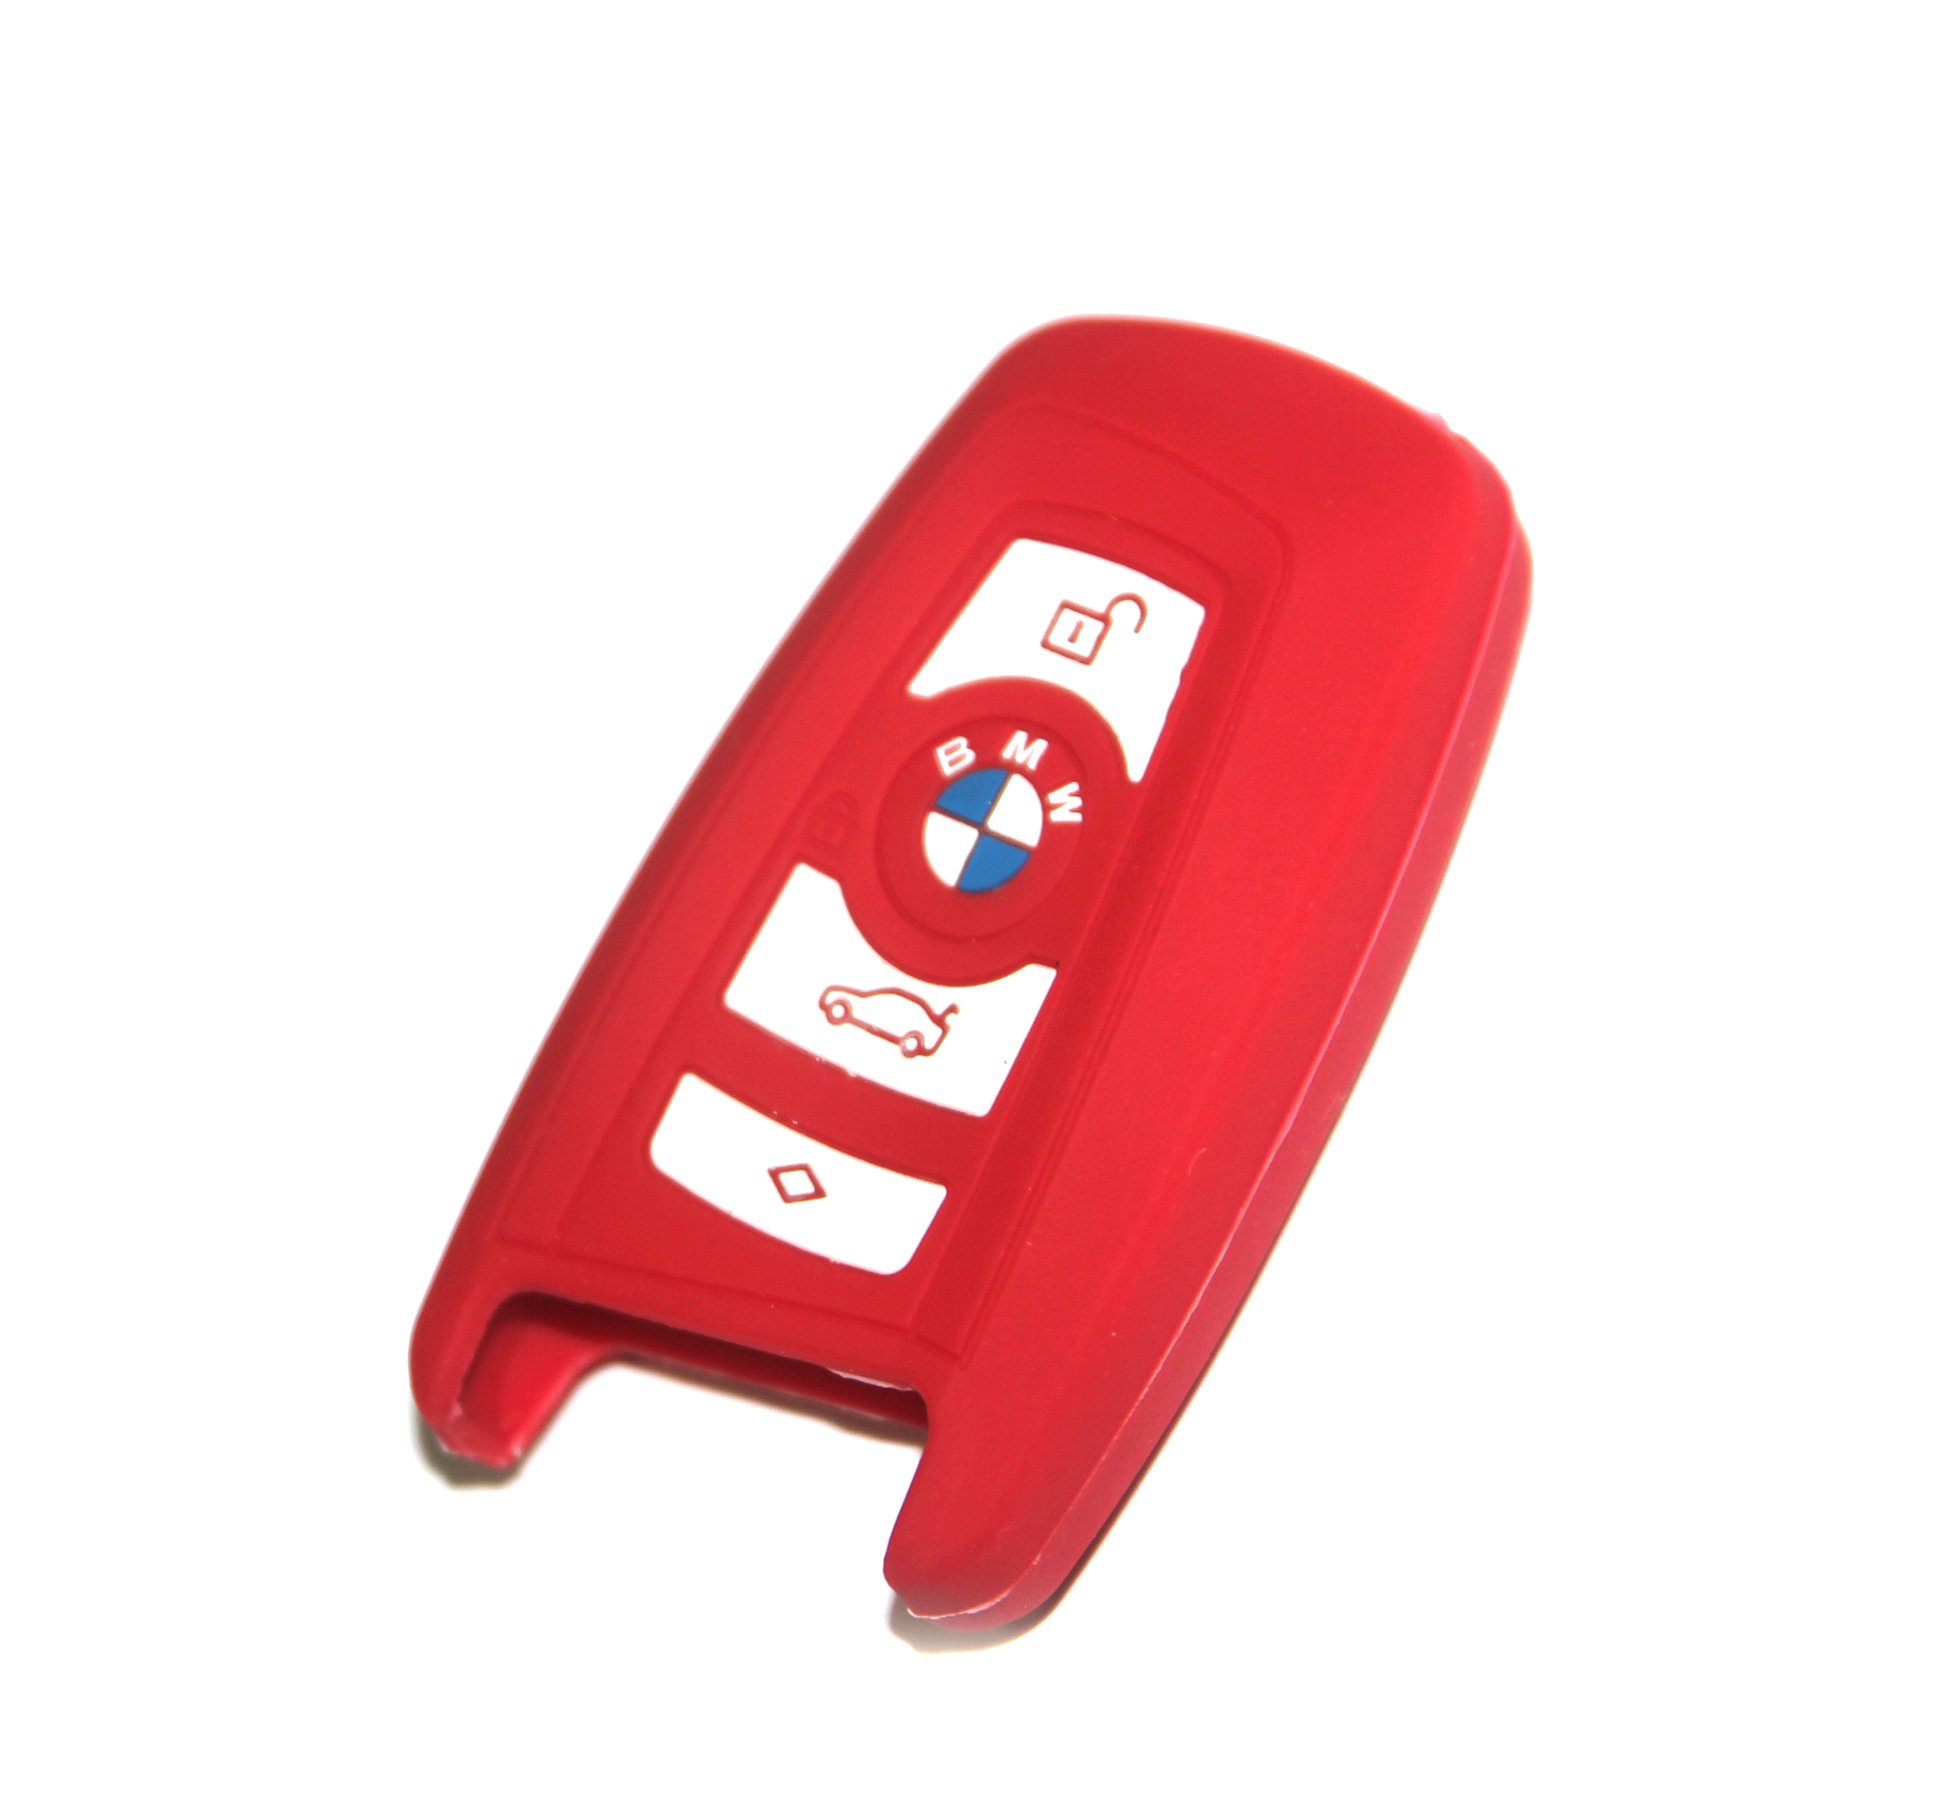 BMW Key Cover Red Silicone Keyless Remote Control Protecting Case Smart Key Holder Fob 3 Buttons (Single Pack)